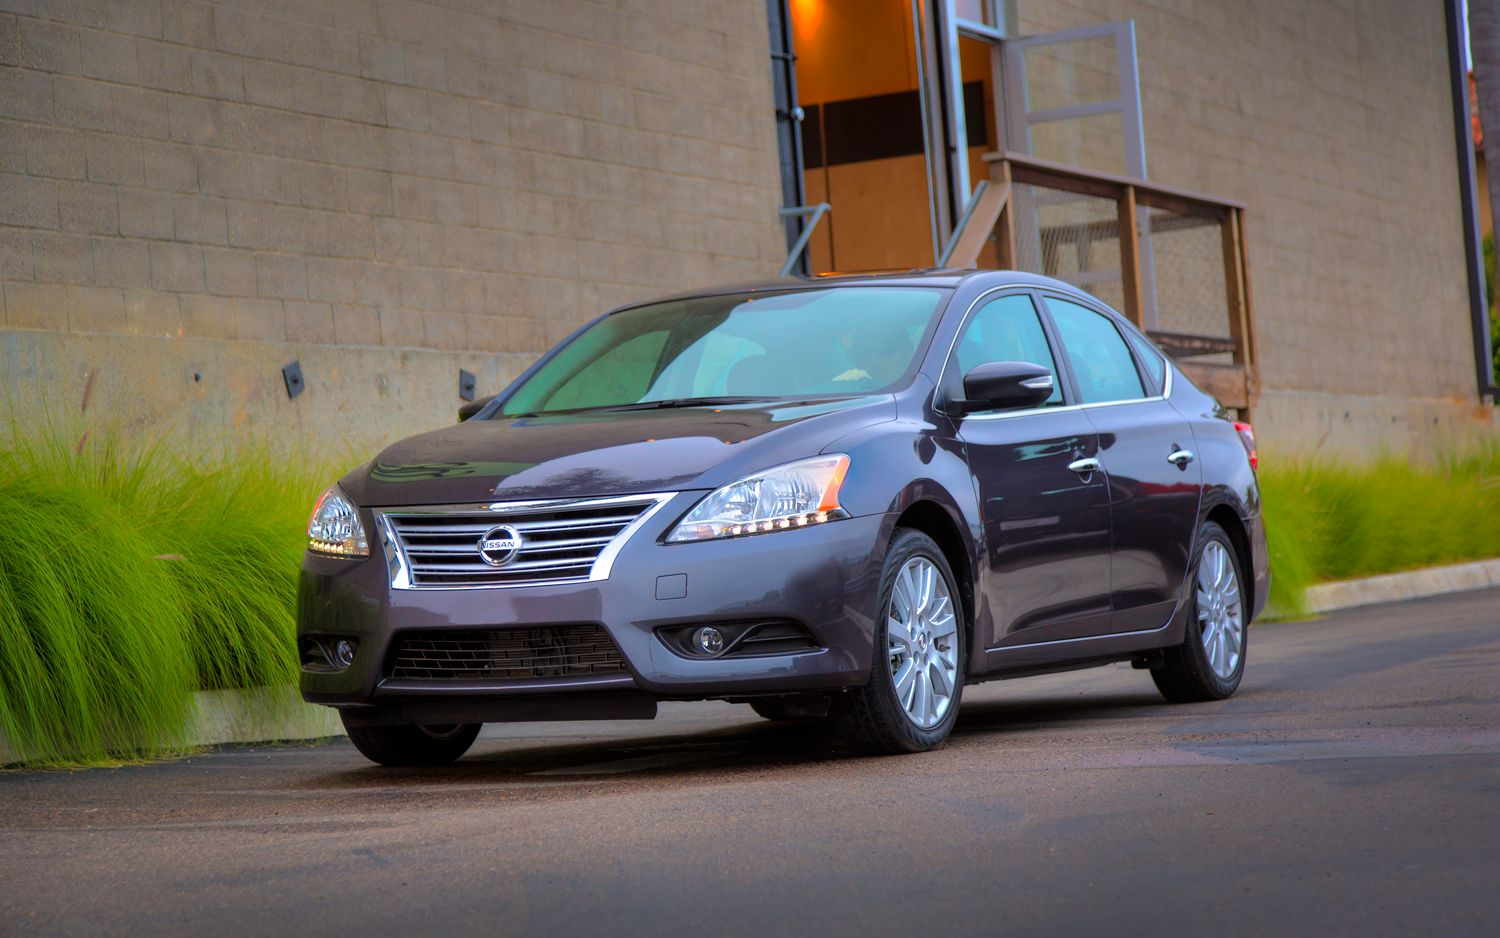 2013 Nissan Sentra Front Left View 21